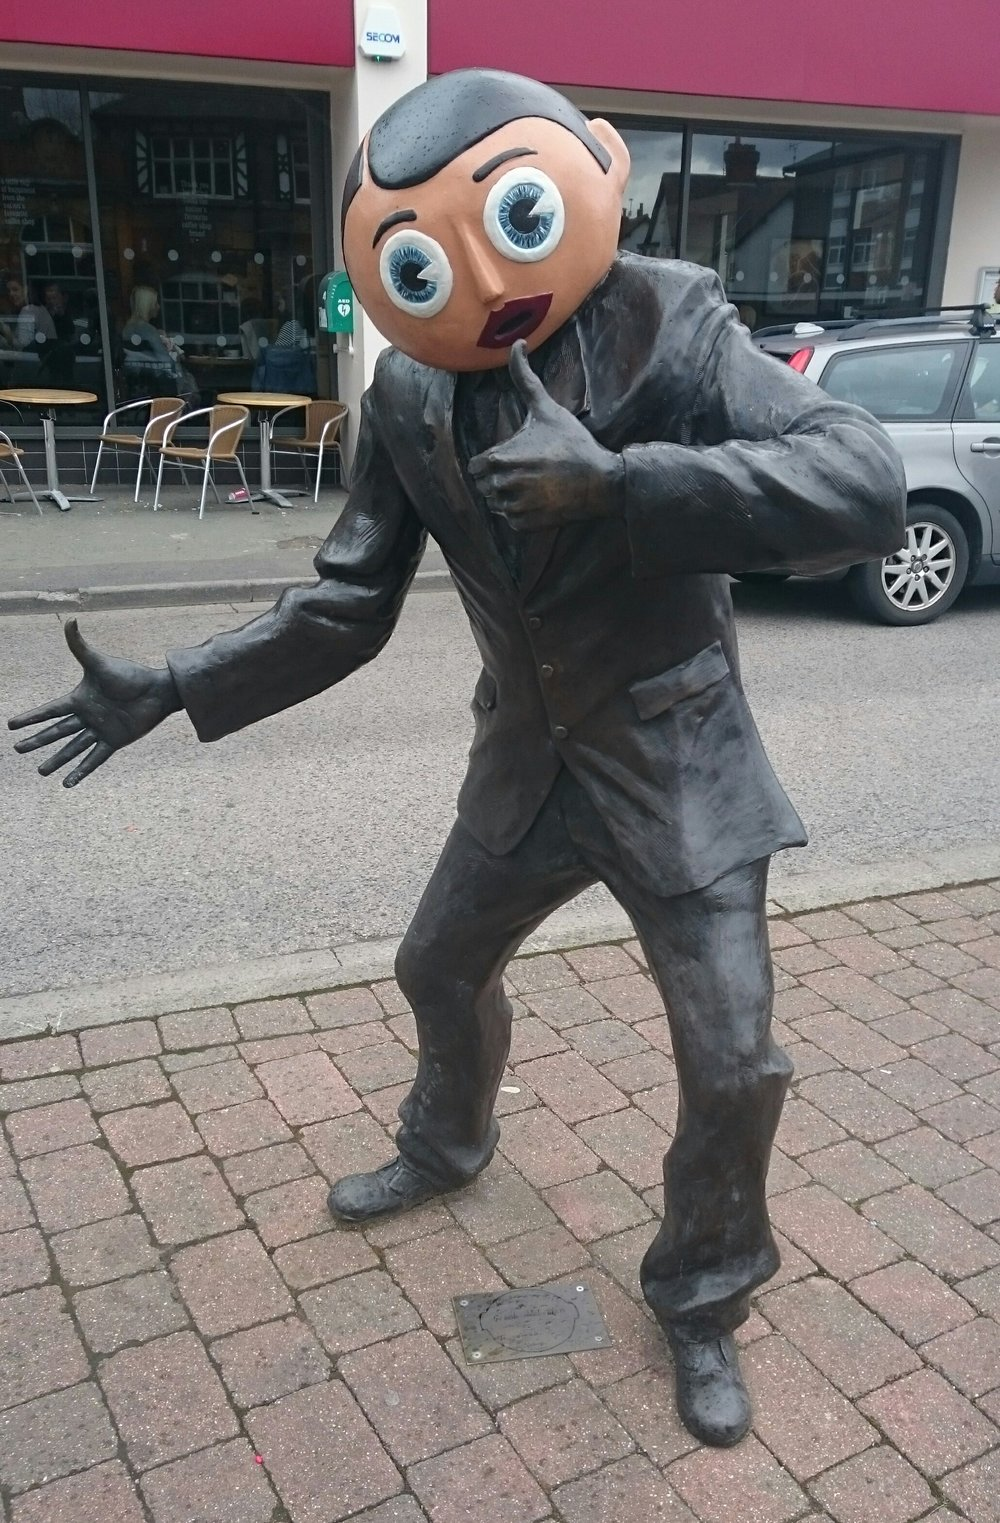 The statue of Frank Sidebottom in Timperley, south Manchester